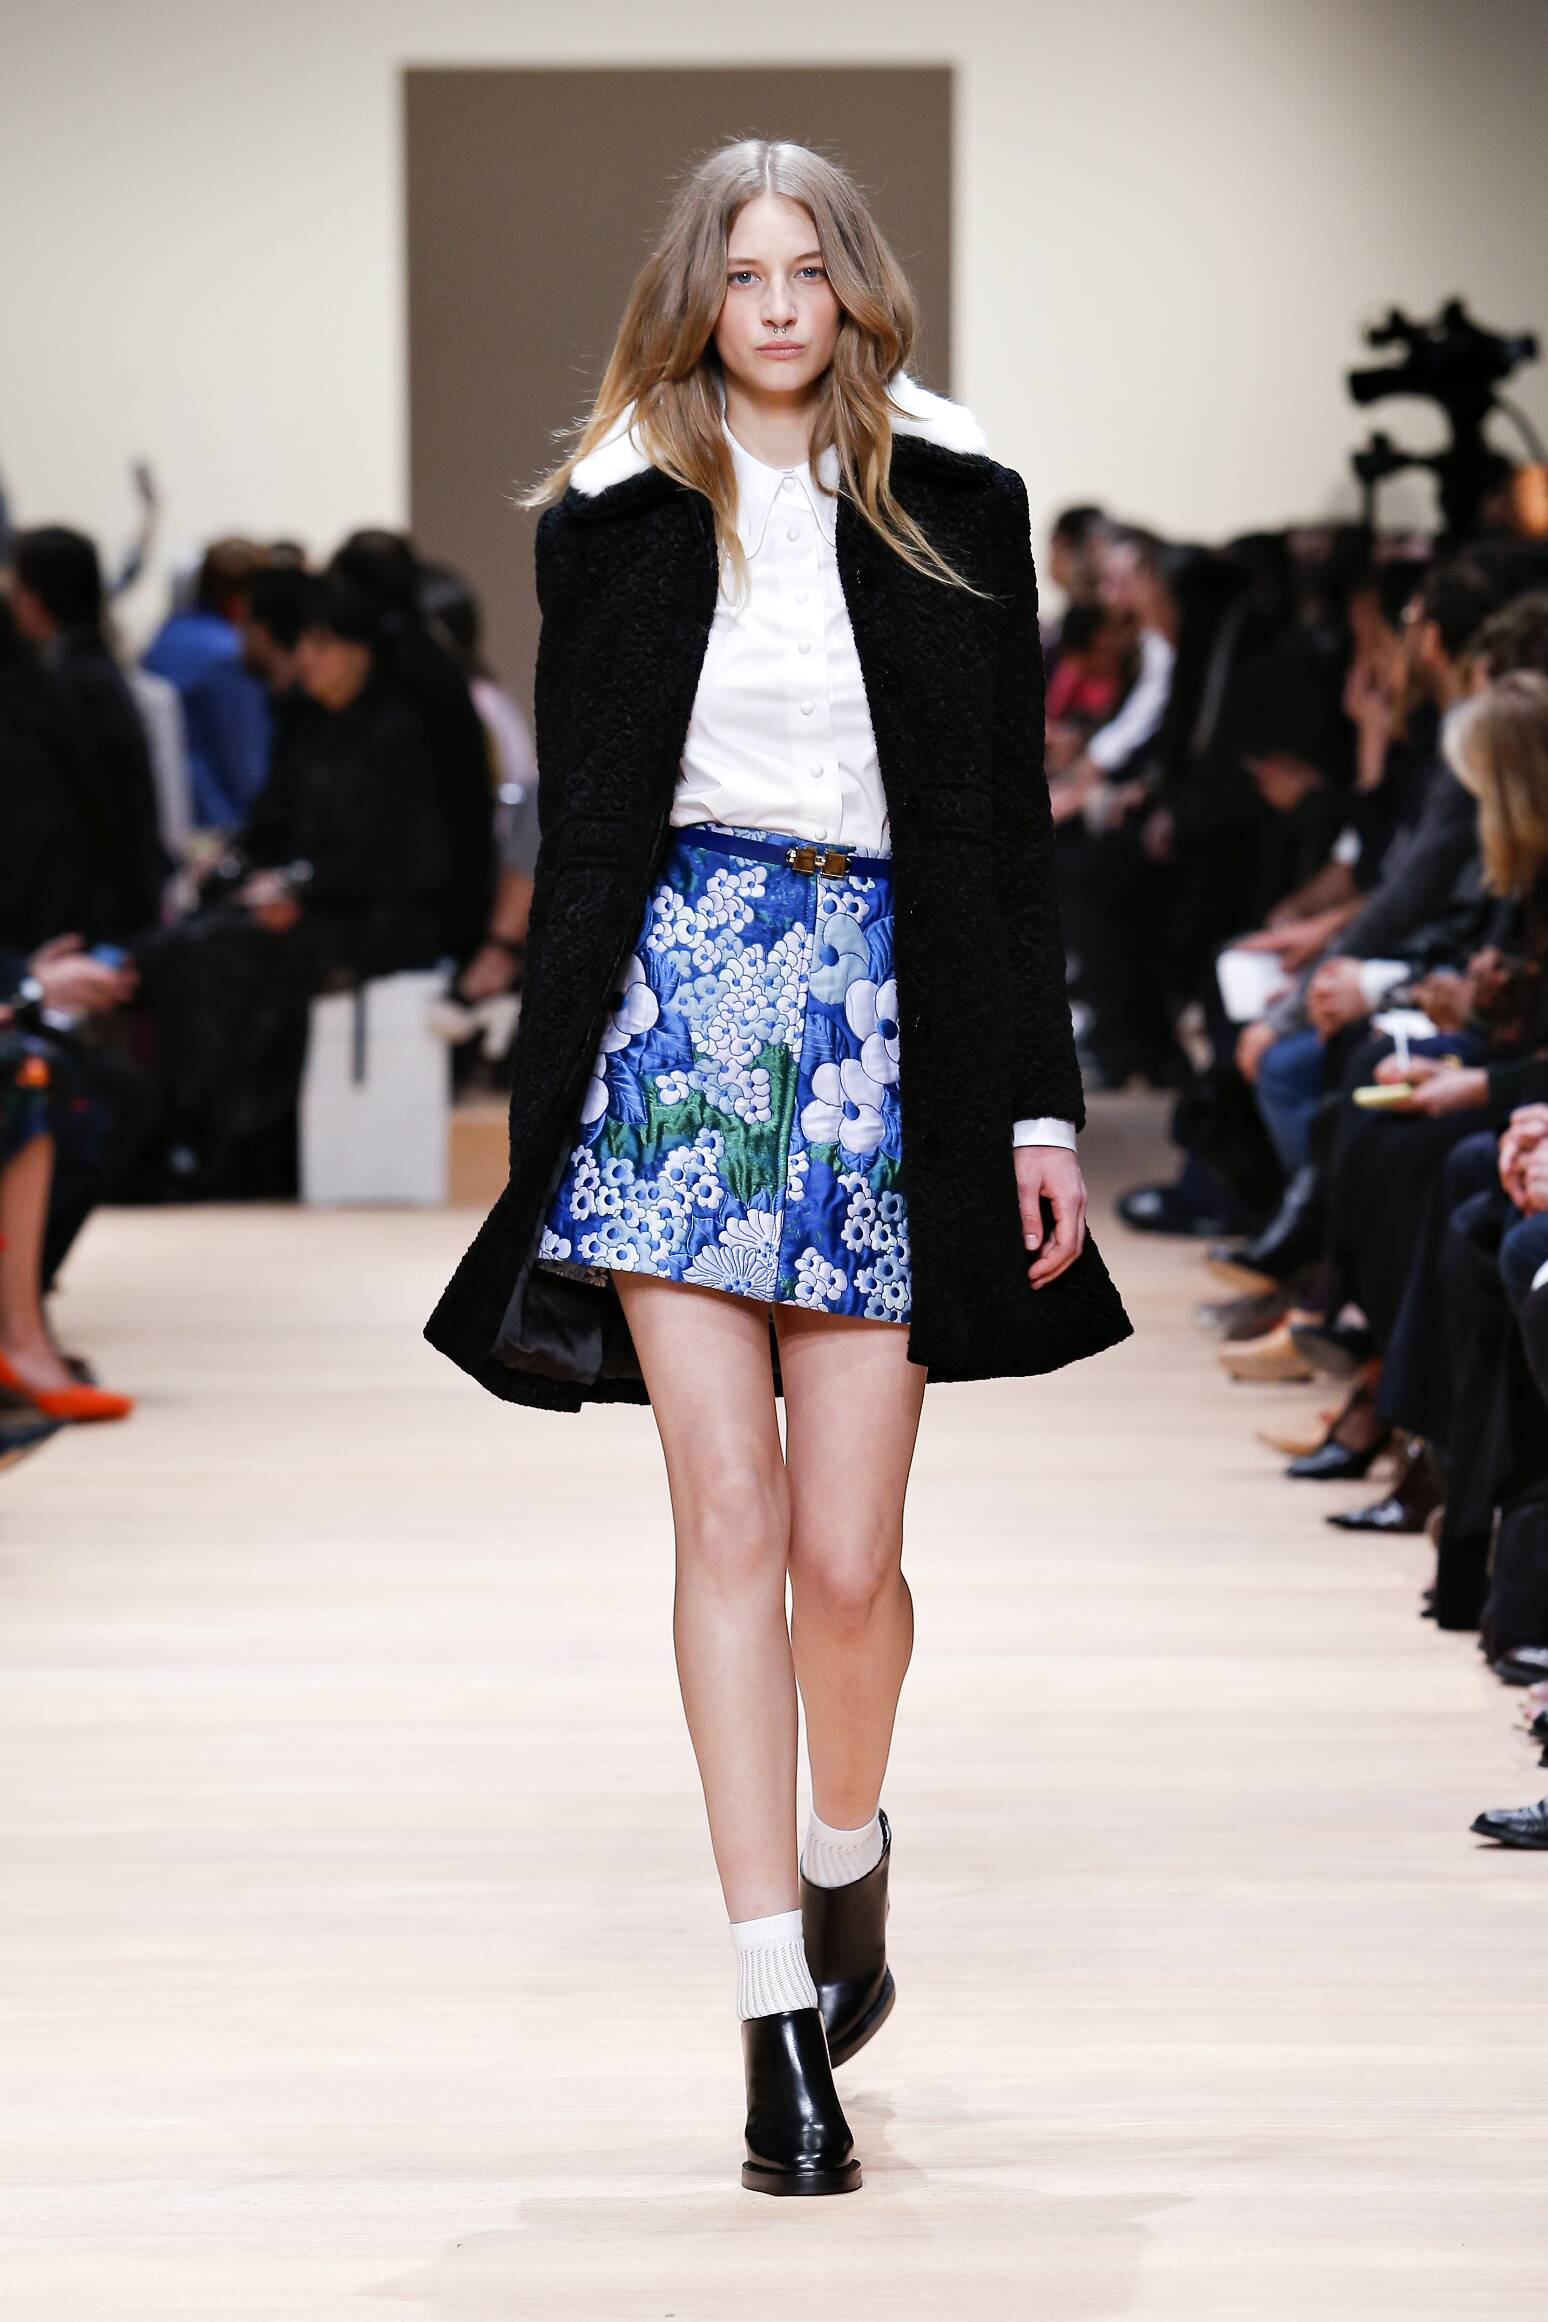 2015 Fashion Woman Model Carven Collection Catwalk